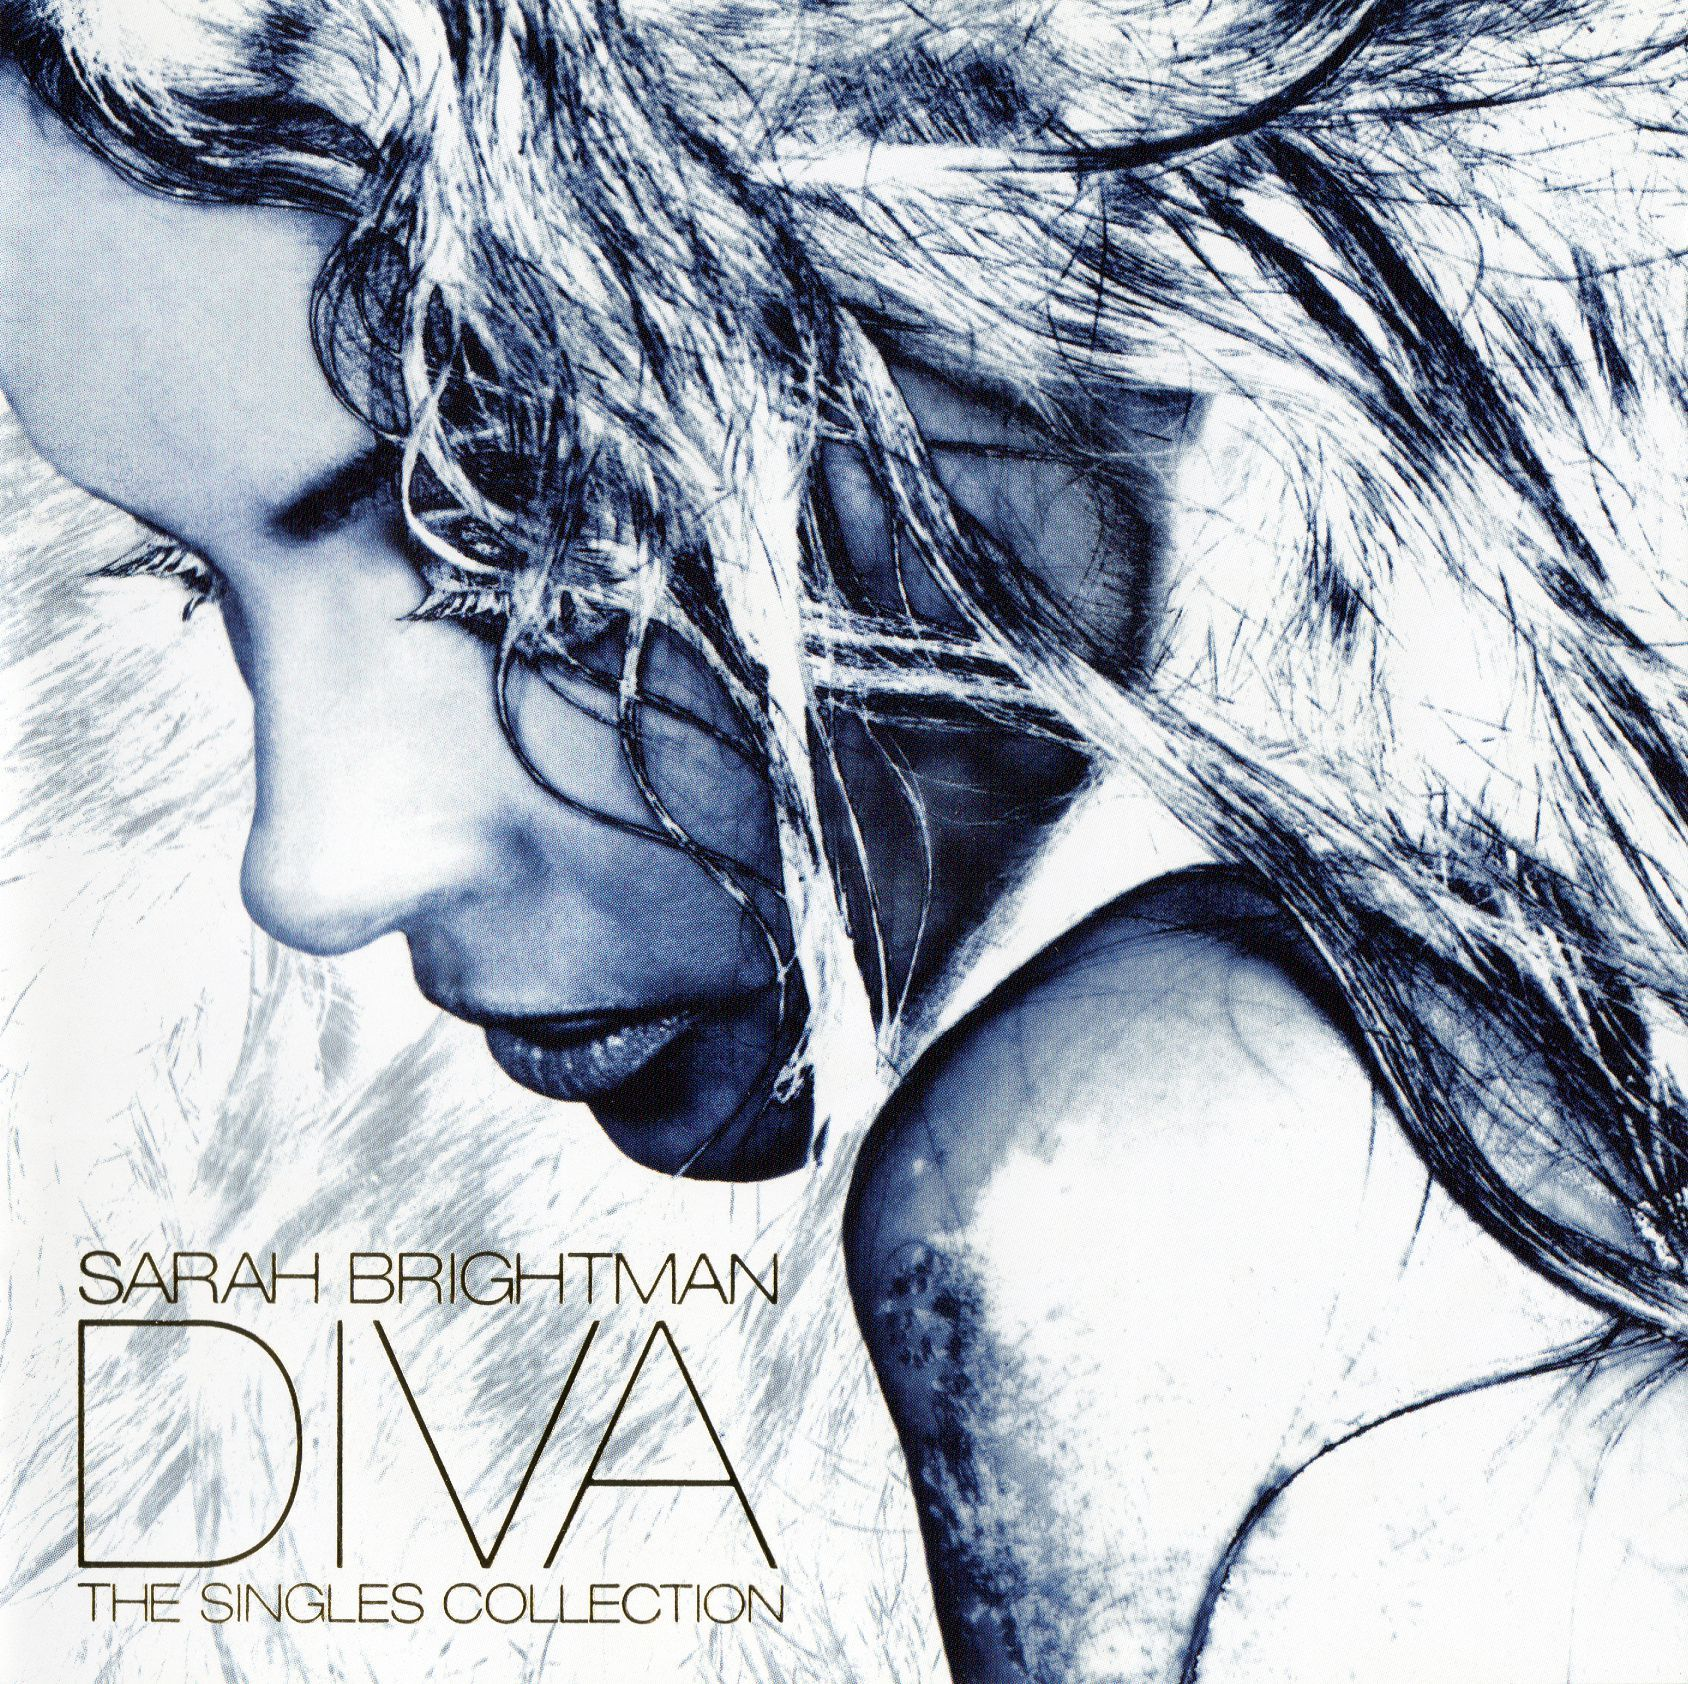 Sarah Brightman - Diva: The Singles Collection album cover